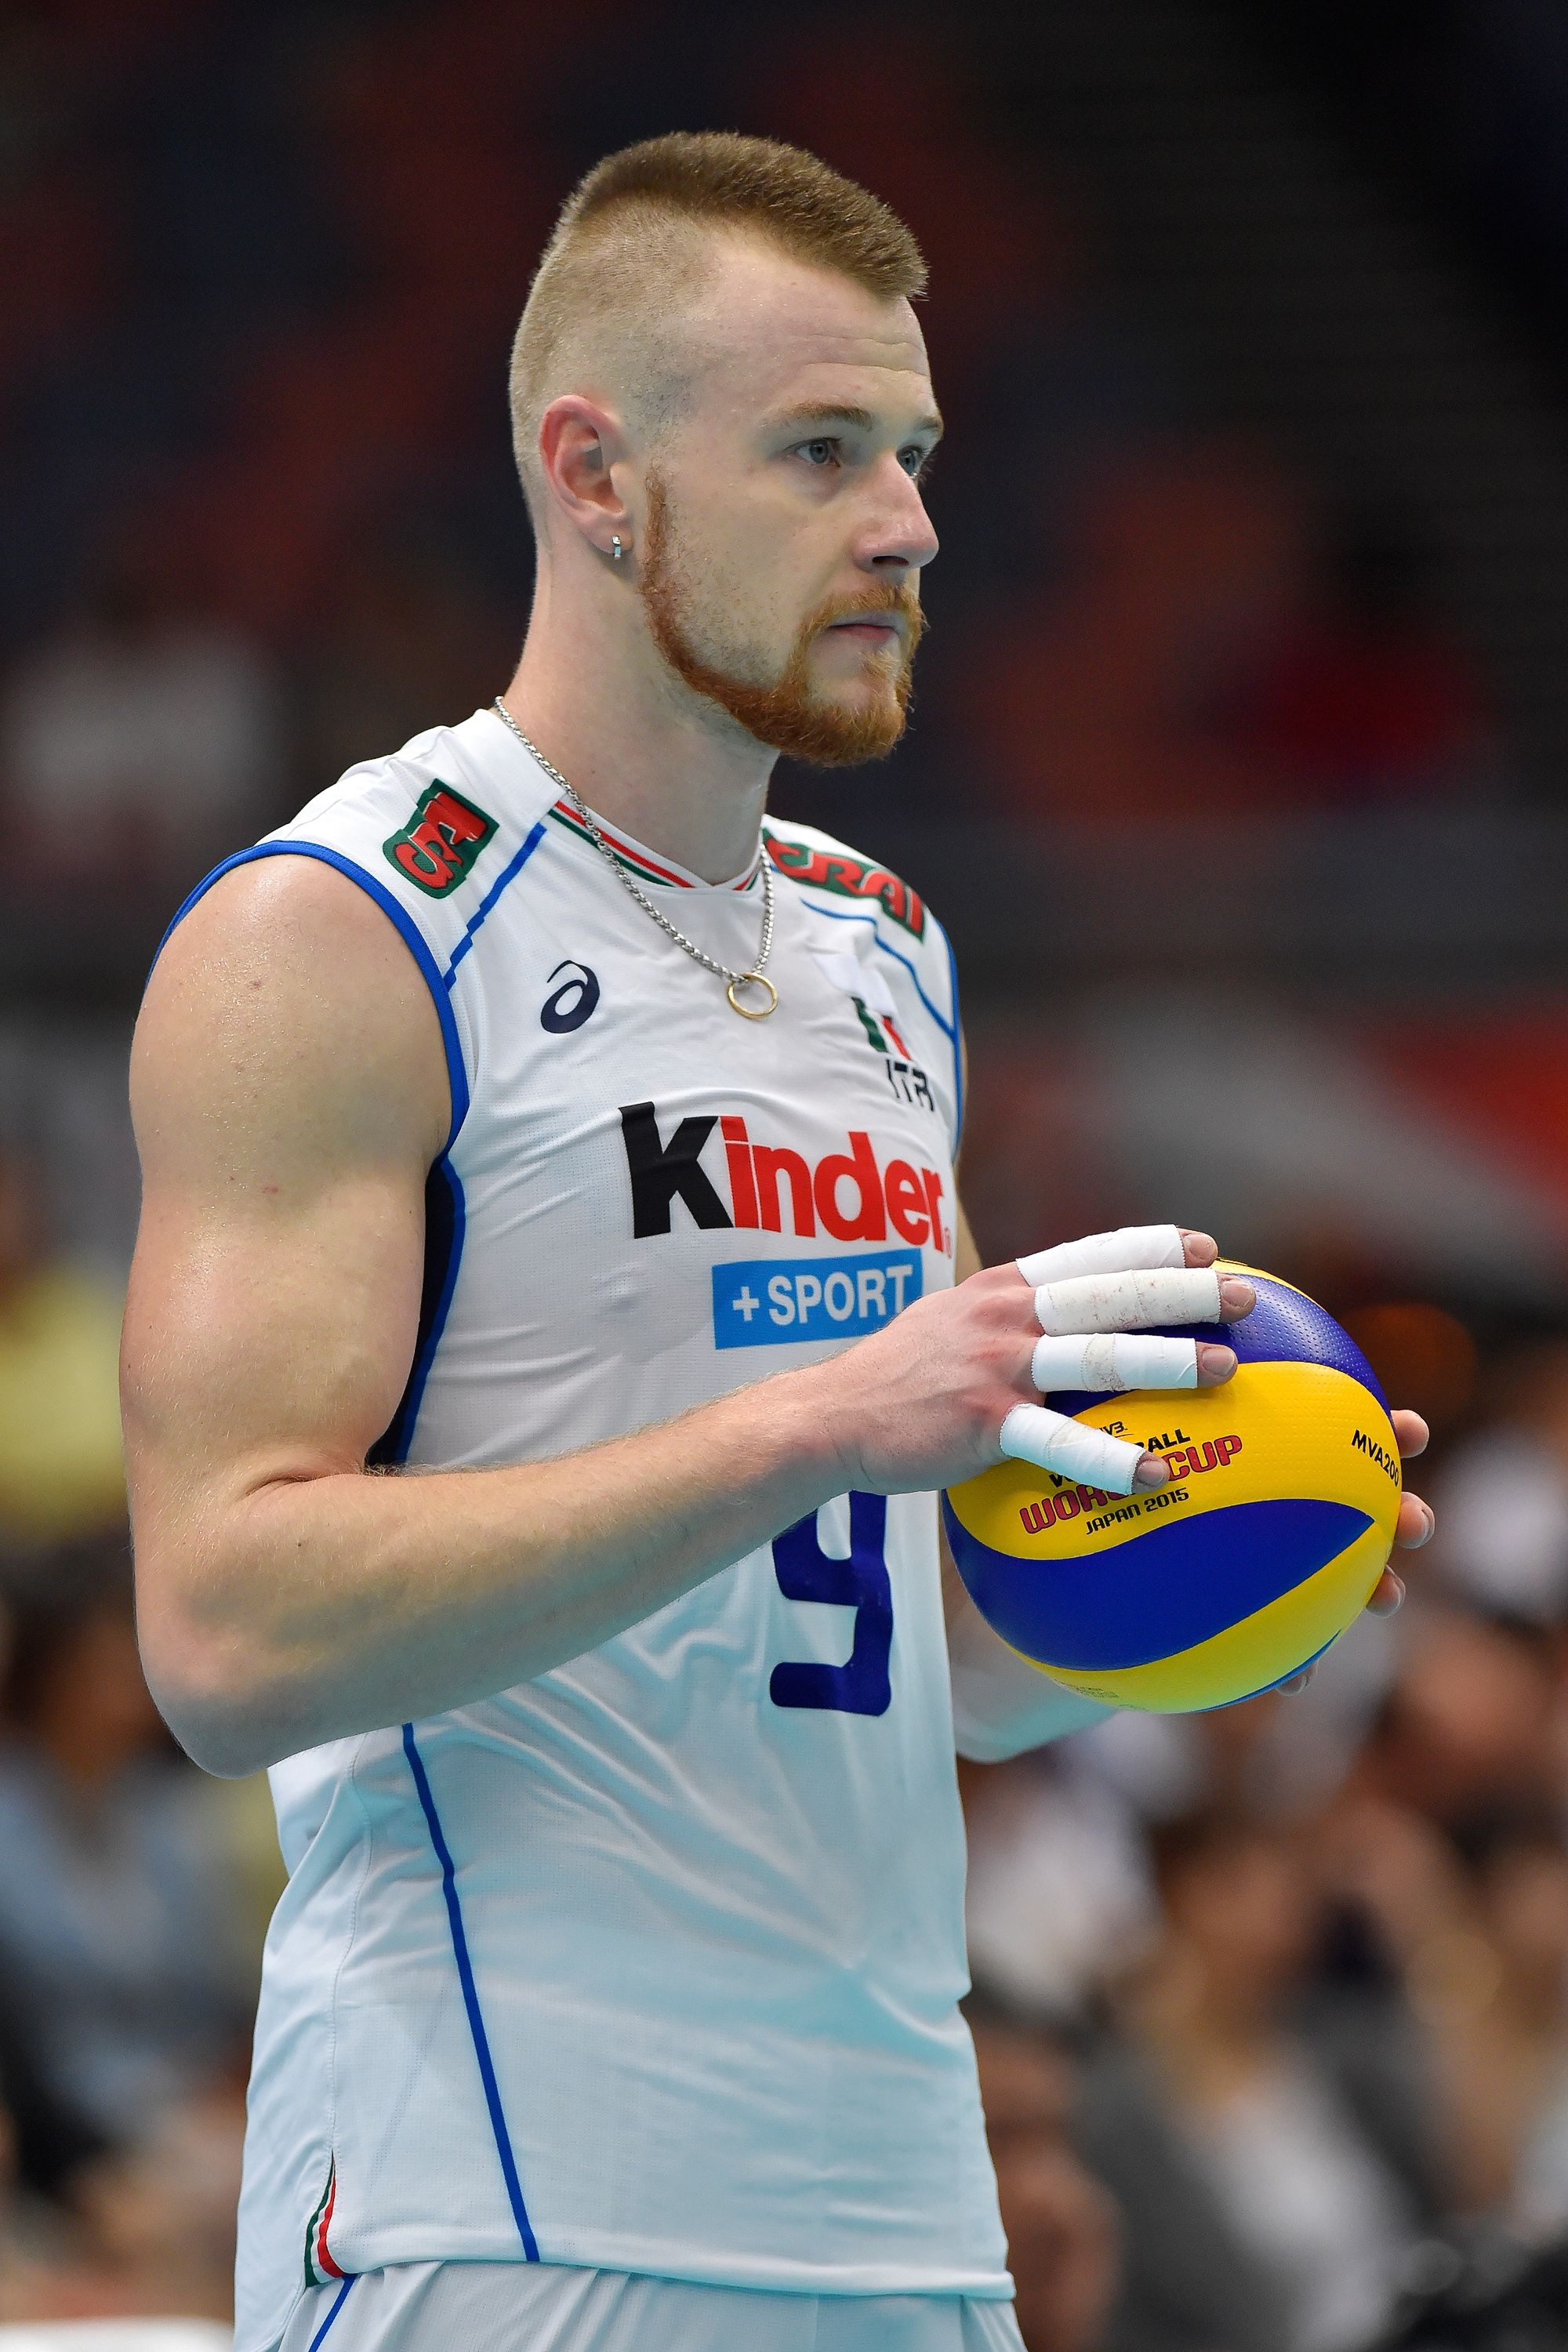 Ivan Zaytsev Getting Ready To Serve The Ball Female Volleyball Players Mens Volleyball Volleyball Images